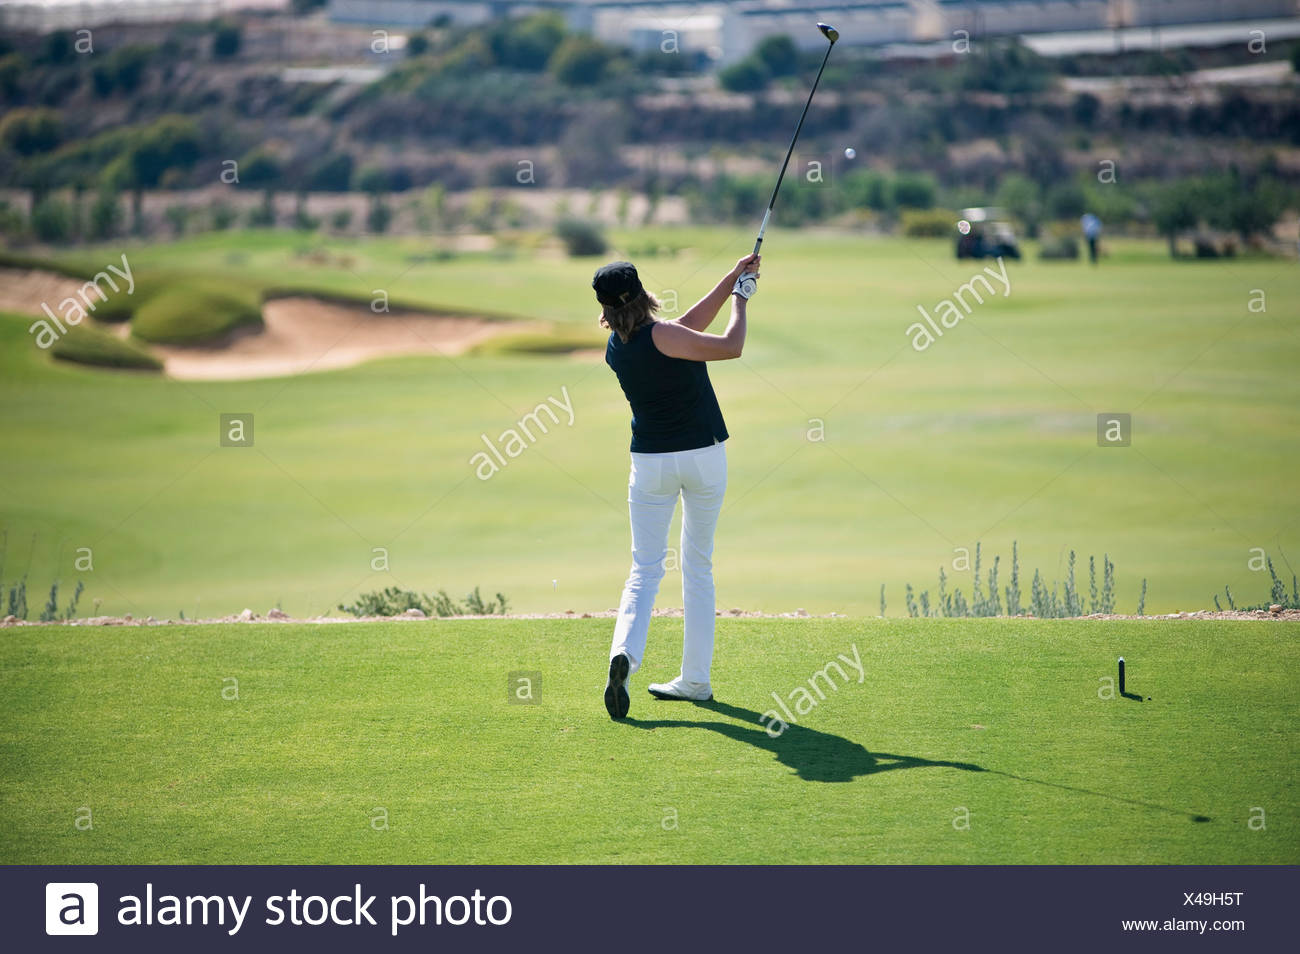 Chypre, woman on golf course Photo Stock